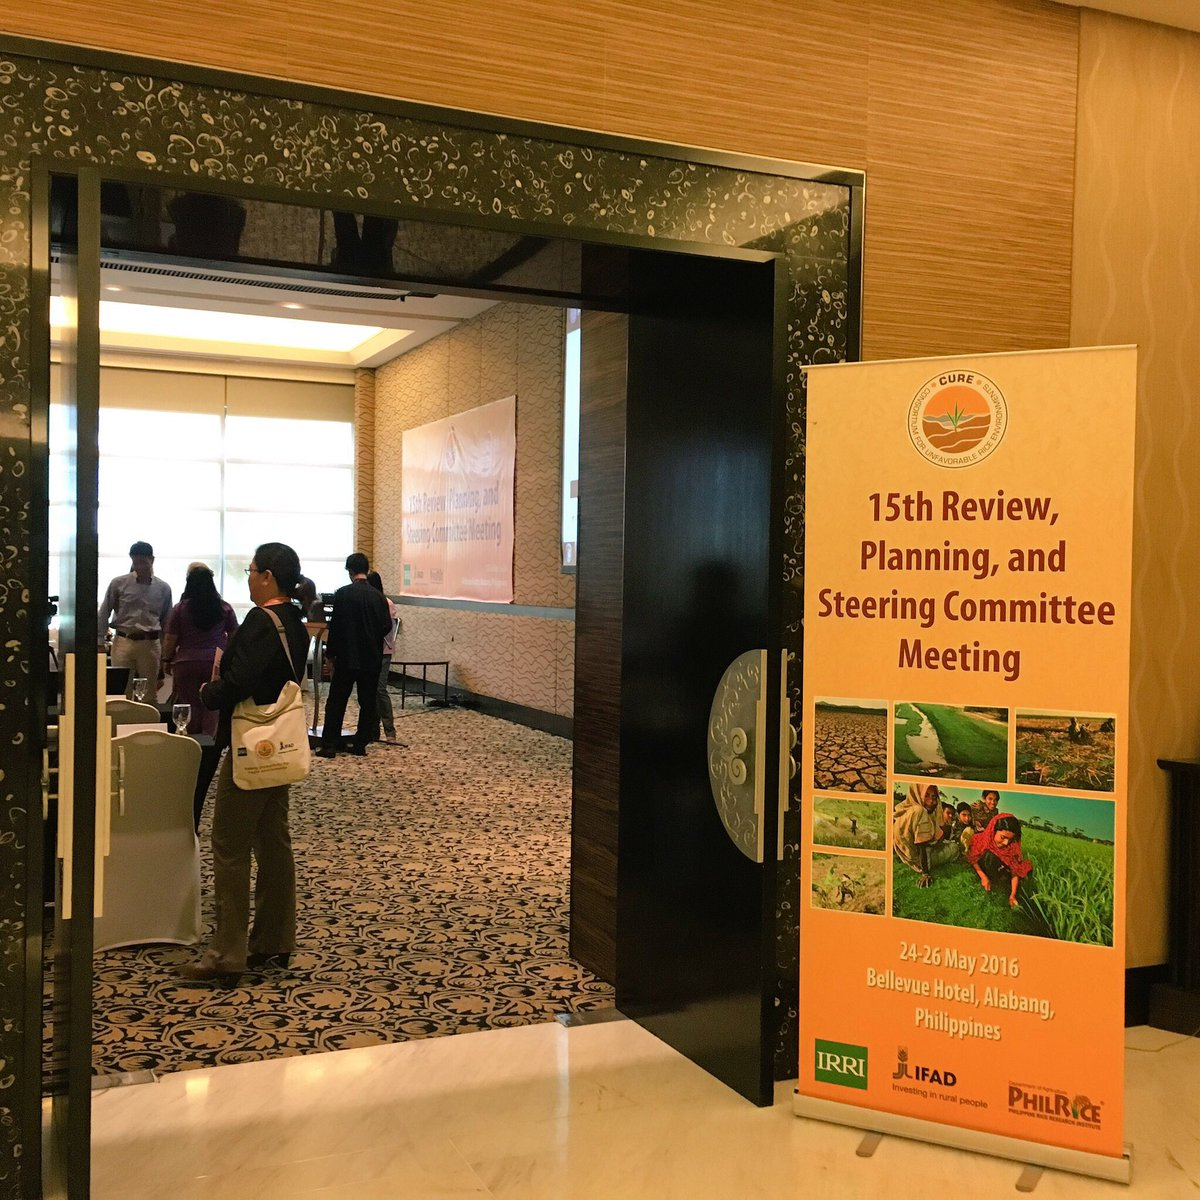 #TODAY: CURE's 15th Review, Planning, and Steering Committee Meeting #rice #foodsecurity #CURE2016 https://t.co/zT3booXNdB